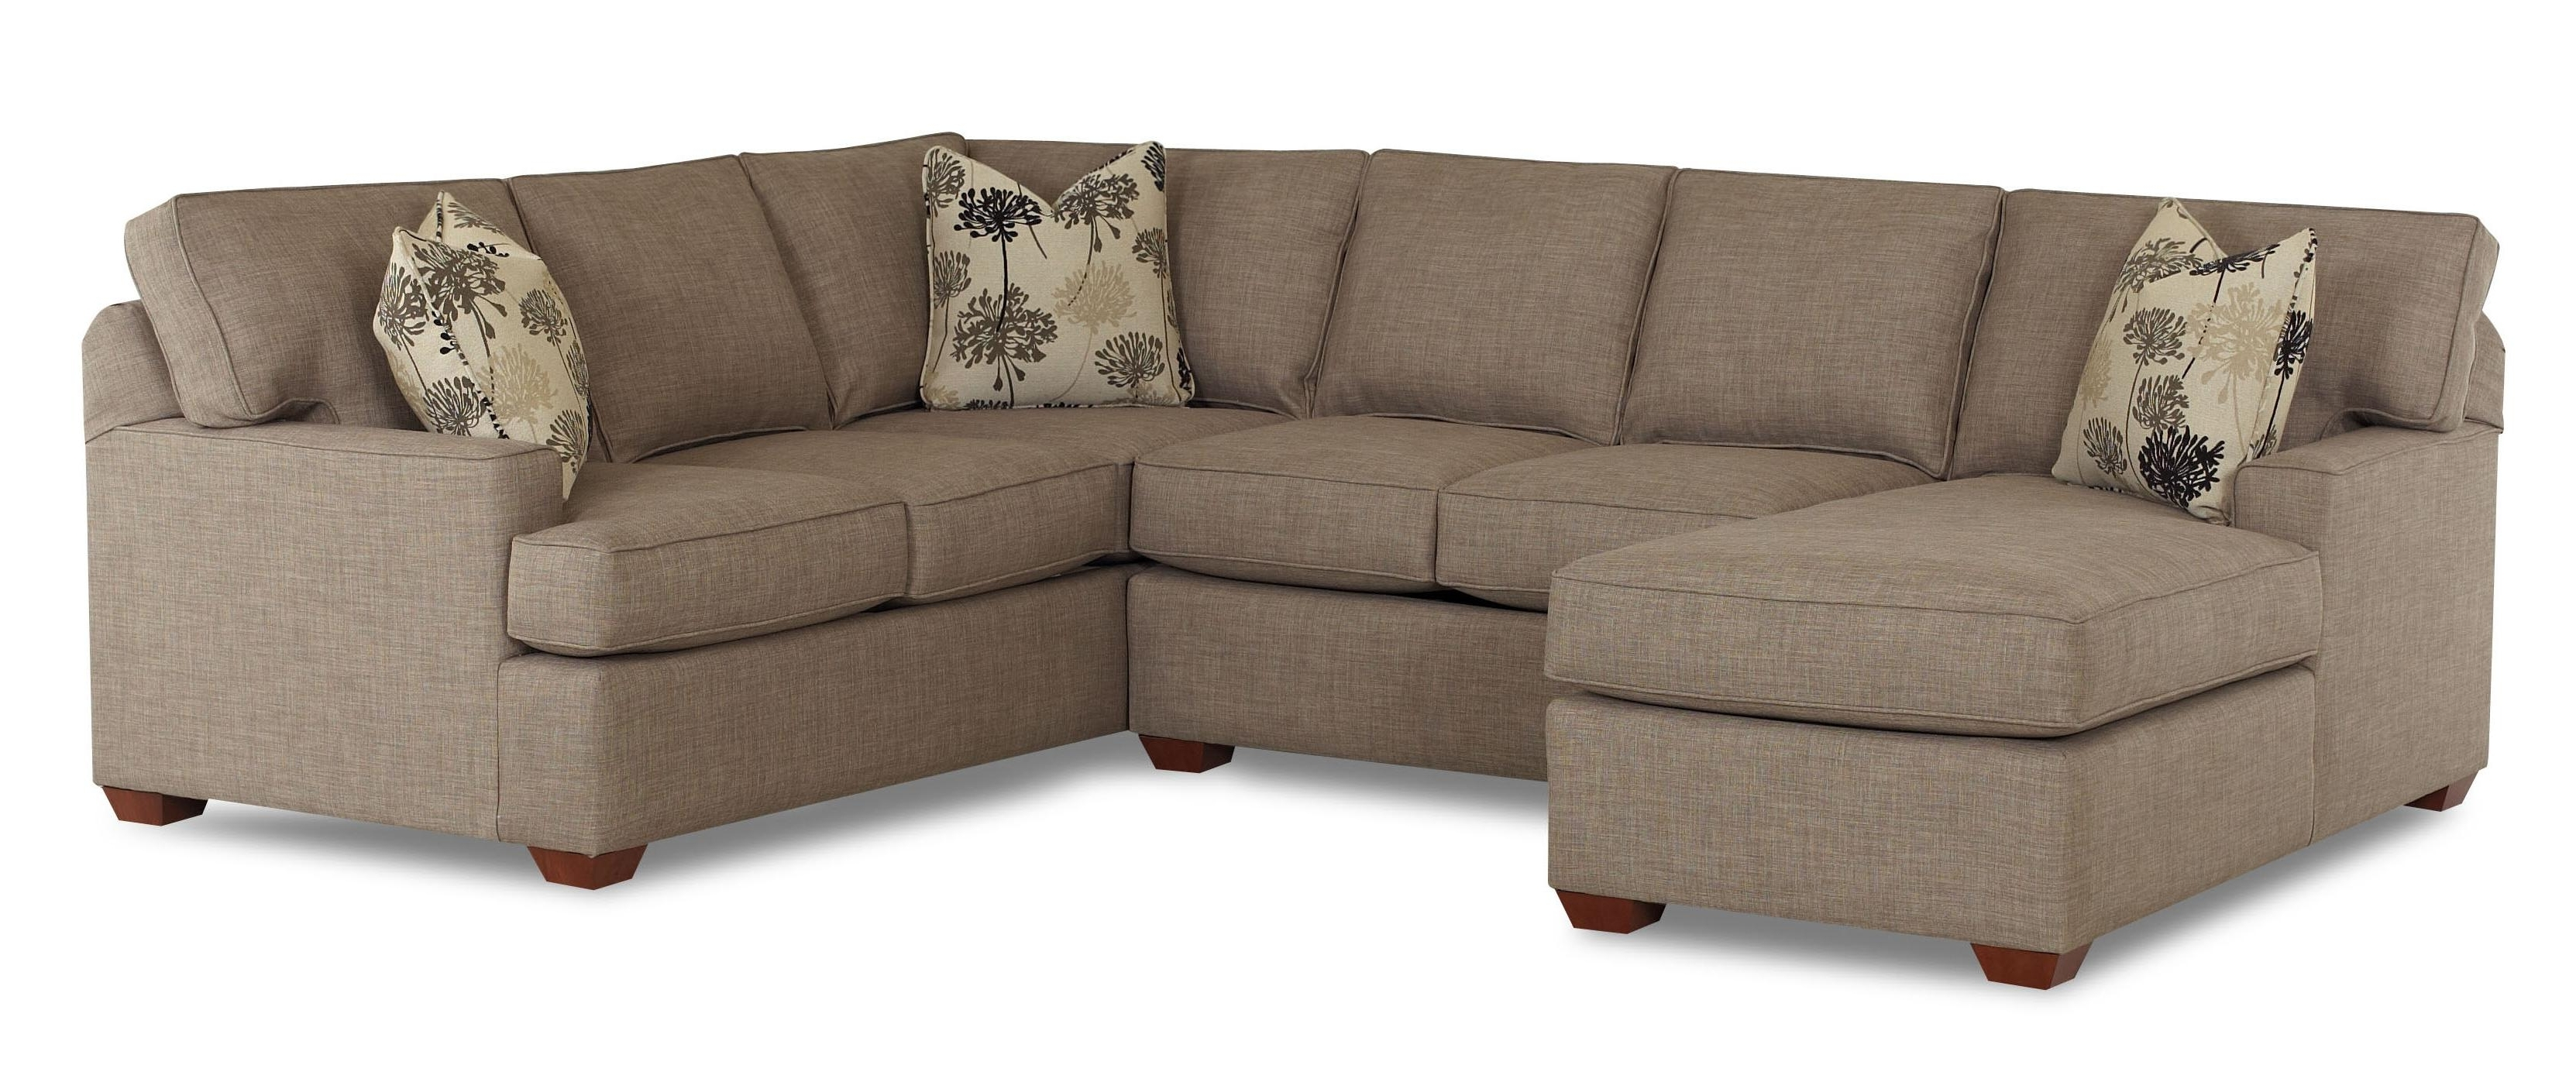 Sectionals Sofas Ethan Allen Sectional Sofas Reviews Small Regarding Well Known Microfiber Sectionals With Chaise (View 14 of 15)